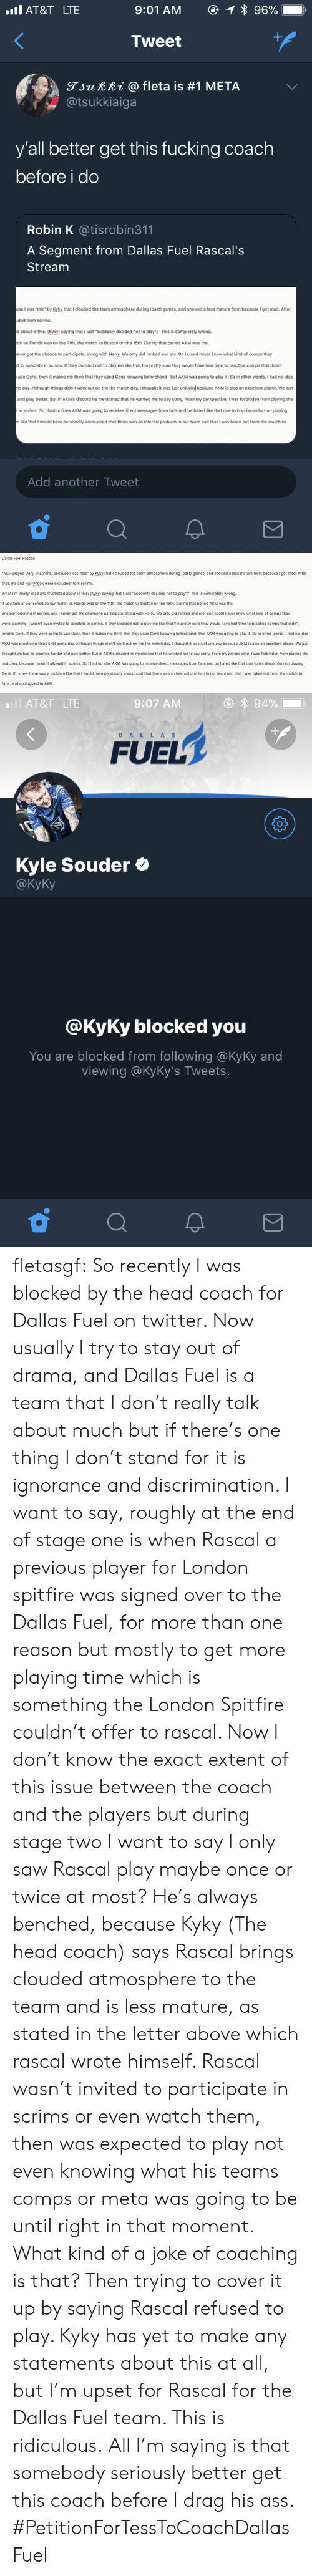 "Ass, Fucking, and Head: AT&T LTE  Tweet  gjunni @ fleta is #1 META  @tsukkiaiga  y'all better get this fucking coach  before i do  Robin K @tisrobin311  A Segment from Dallas Fuel Rascal's  Stream  se I was 'told by Kyky that I clouded the team atmosphere during (past) games, and showed a less mature form because I got mad. After  ded from scrims.  d about is this: (Kyky) saying that I just ""suddenly decided not to play""? This is completely wrong.  ch vs Florida was on the 11th, the match vs Boston on the 15th. During that period AKM was the  ever got the chance to participate, along with Harry. We only did ranked and etc. So I could never know what kind of comps they  to spectate in scrims. If they decided not to play me like that I'm pretty sure they would have had time to practice comps that didn't  use Genji, then it makes me think that they used Genji knowing beforehand that AKM was going to play it. So in other words, I had no idea  e day. Although things didn't work out on the the match day, I thought it was just unlucky)because AKM is also an excellent player. We just  and play better. But in AKM's discord he mentioned that he wanted me to say sorry. From my perspective, I was forbidden from playing the  in scrims. So I had no idea AKM was going to receive direct messages from fans and be hated like that due to his discomfort on playing  like that I would have personally announced that there was an internal problem in our team and that I was taken out from the match to  Add another Tweet   Dallas Fuel Rascal  ""AKM played Genj in scrims, because I was 'told' by Kyky that I clouded the team atmosphere during (past) games, and showed a less mature form because I got mad. After  that, me and Harryhook were excluded from scrims.  What I'm 'really mad and frustrated about is this: (Kyky) saying that I just ""suddenly decided not to play""? This is completely wrong  If you look at our schedule our match vs Florida was on the 11th, the match vs Boston on the 15th. During that period AKM was the  one participating in scrims, and I never got the chance to participate, along with Harry. We only did ranked and etc. So I could never know what kind of comps they  were planning. I wasn't even invited to spectate in scrims. If they decided not to play me like that I'm pretty sure they would have had time to practice comps that didn't  involve Genji. If they were going to use Genji, then it makes me think that they used Genji knowing beforehand that AKM was going to play it. So in other words, I had no idea  AKM was practicing Genji until game day. Although things didn't work out on the the match day, I thought it was just unlucky because AKM is also an excellent player. We just  thought we had to practice harder and play better. But in AKM's discord he mentioned that he wanted me to say sorry. From my perspective, I was forbidden from playing the  matches, because I wasn't allowed in scrims. So I had no idea AKM was going to receive direct messages from fans and be hated like that due to his discomfort on playing  Genji. If I knew there was a problem like that I would have personally announced that there was an internal problem in our team and that I was taken out from the match to  fans, and apologized to AKM.   AT&T LTE  9:07 AM  FUEL  DAL L AS  Kyle Souder Ф  @KyKy  @KyKy blocked you  You are blocked from following @KyKy and  viewing @KyKy's Tweets fletasgf:  So recently I was blocked by the head coach for Dallas Fuel on twitter.  Now usually I try to stay out of drama, and Dallas Fuel is a team that I don't really talk about much but if there's one thing I don't stand for it is ignorance and discrimination. I want to say, roughly at the end of stage one is when Rascal a previous player for London spitfire was signed over to the Dallas Fuel, for more than one reason but mostly to get more playing time which is something the London Spitfire couldn't offer to rascal.   Now I don't know the exact extent of this issue between the coach and the players but during stage two I want to say I only saw Rascal play maybe once or twice at most? He's always benched, because Kyky (The head coach) says Rascal brings clouded atmosphere to the team and is less mature, as stated in the letter above which rascal wrote himself. Rascal wasn't invited to participate in scrims or even watch them, then was expected to play not even knowing what his teams comps or meta was going to be until right in that moment.  What kind of a joke of coaching is that? Then trying to cover it up by saying Rascal refused to play. Kyky has yet to make any statements about this at all, but I'm upset for Rascal for the Dallas Fuel team. This is ridiculous.  All I'm saying is that somebody seriously better get this coach before I drag his ass. #PetitionForTessToCoachDallasFuel"